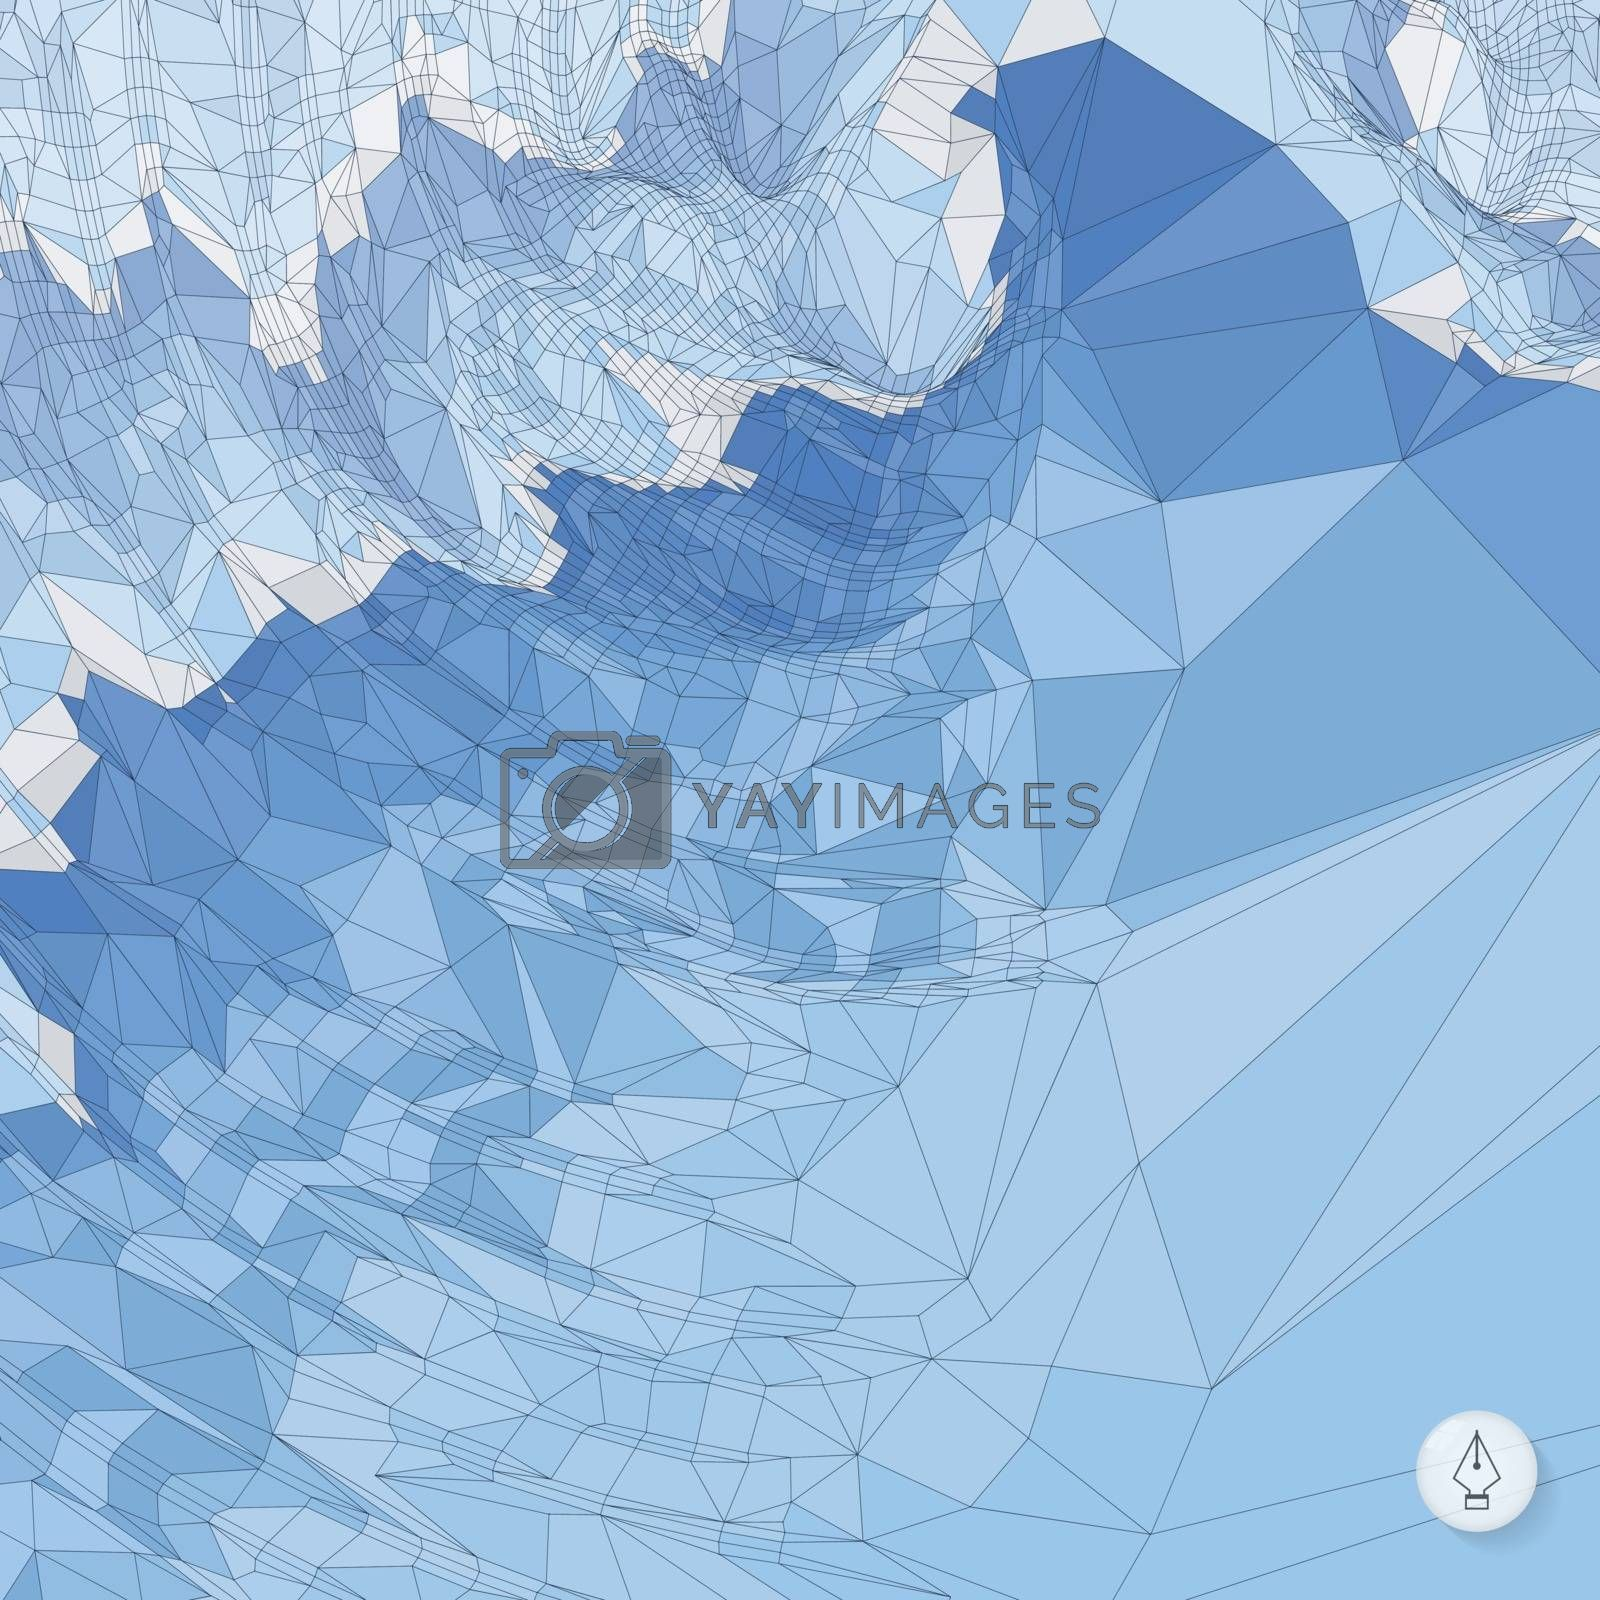 Abstract landscape background. Mosaic vector illustration. Can be used for wallpaper, web page background, web banners.